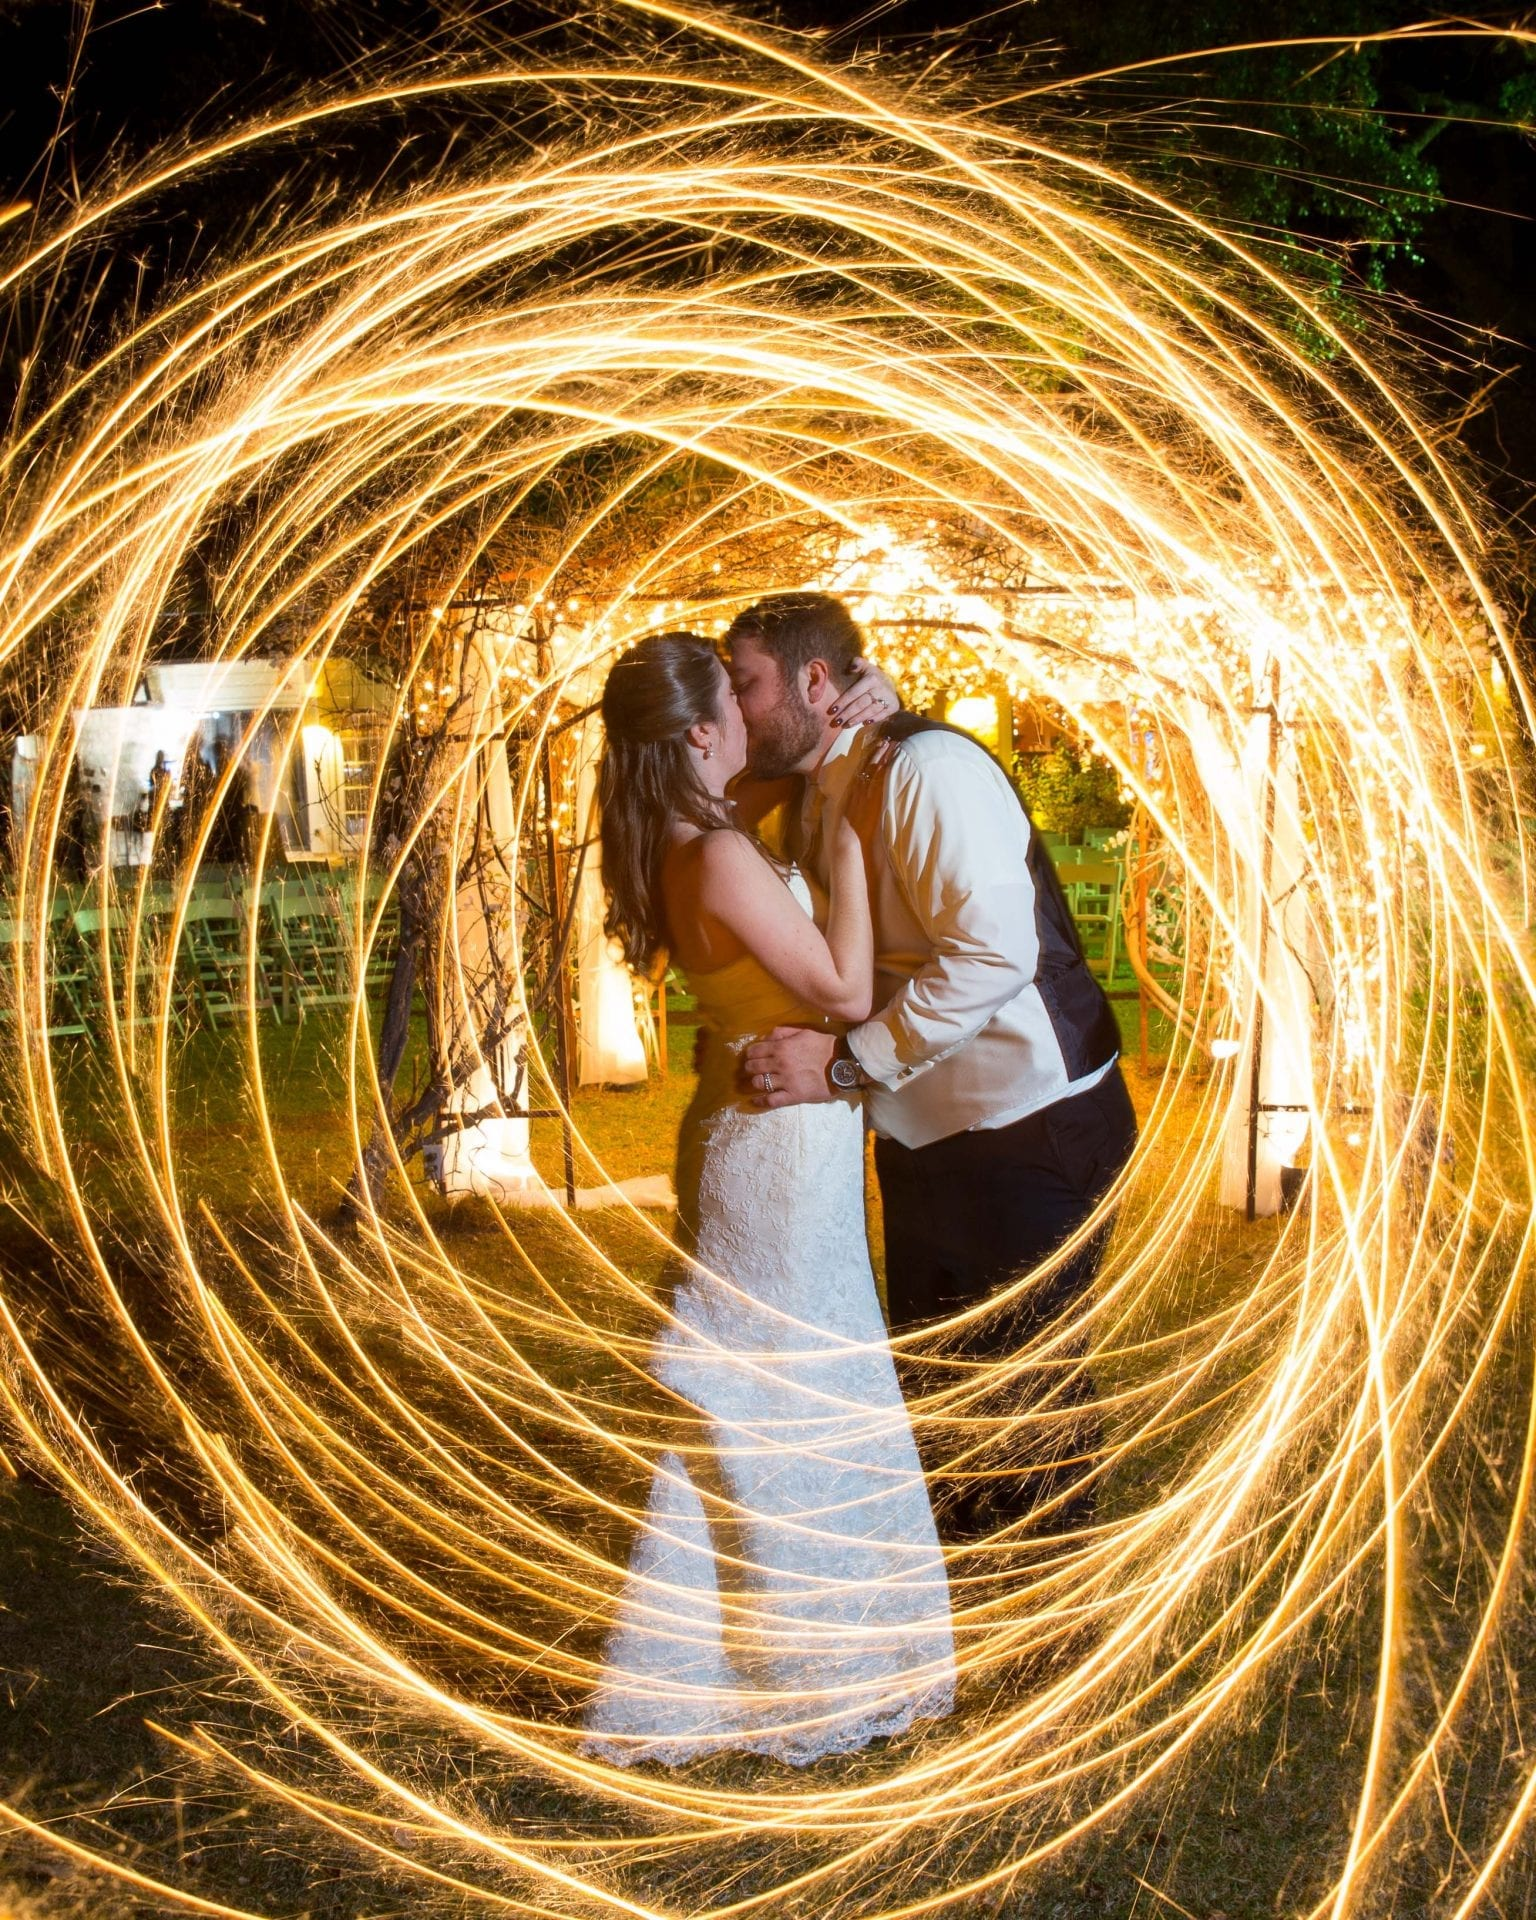 Swirling sparklers with just married couple